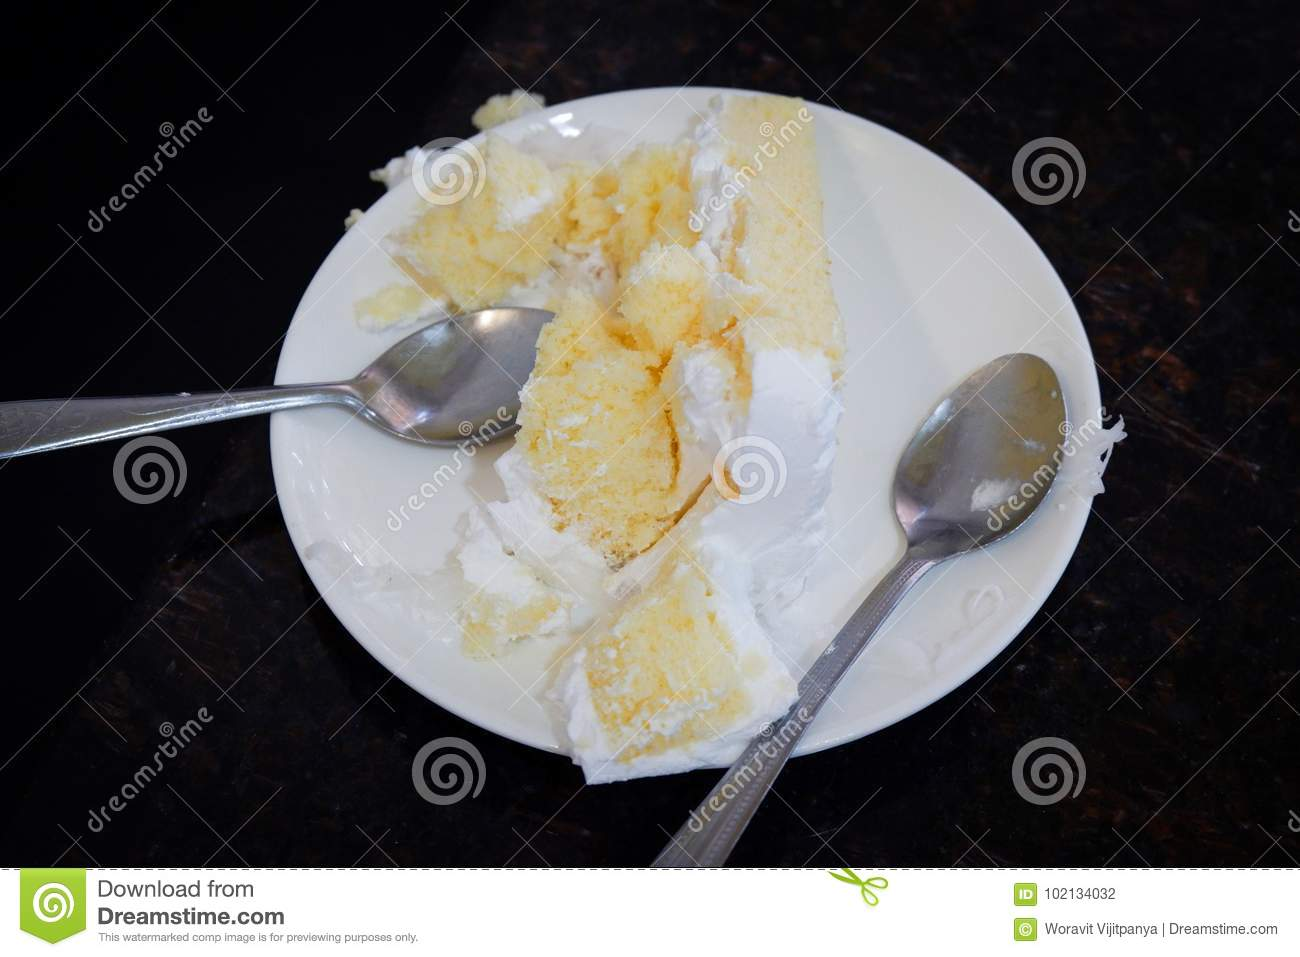 Cake on the plate